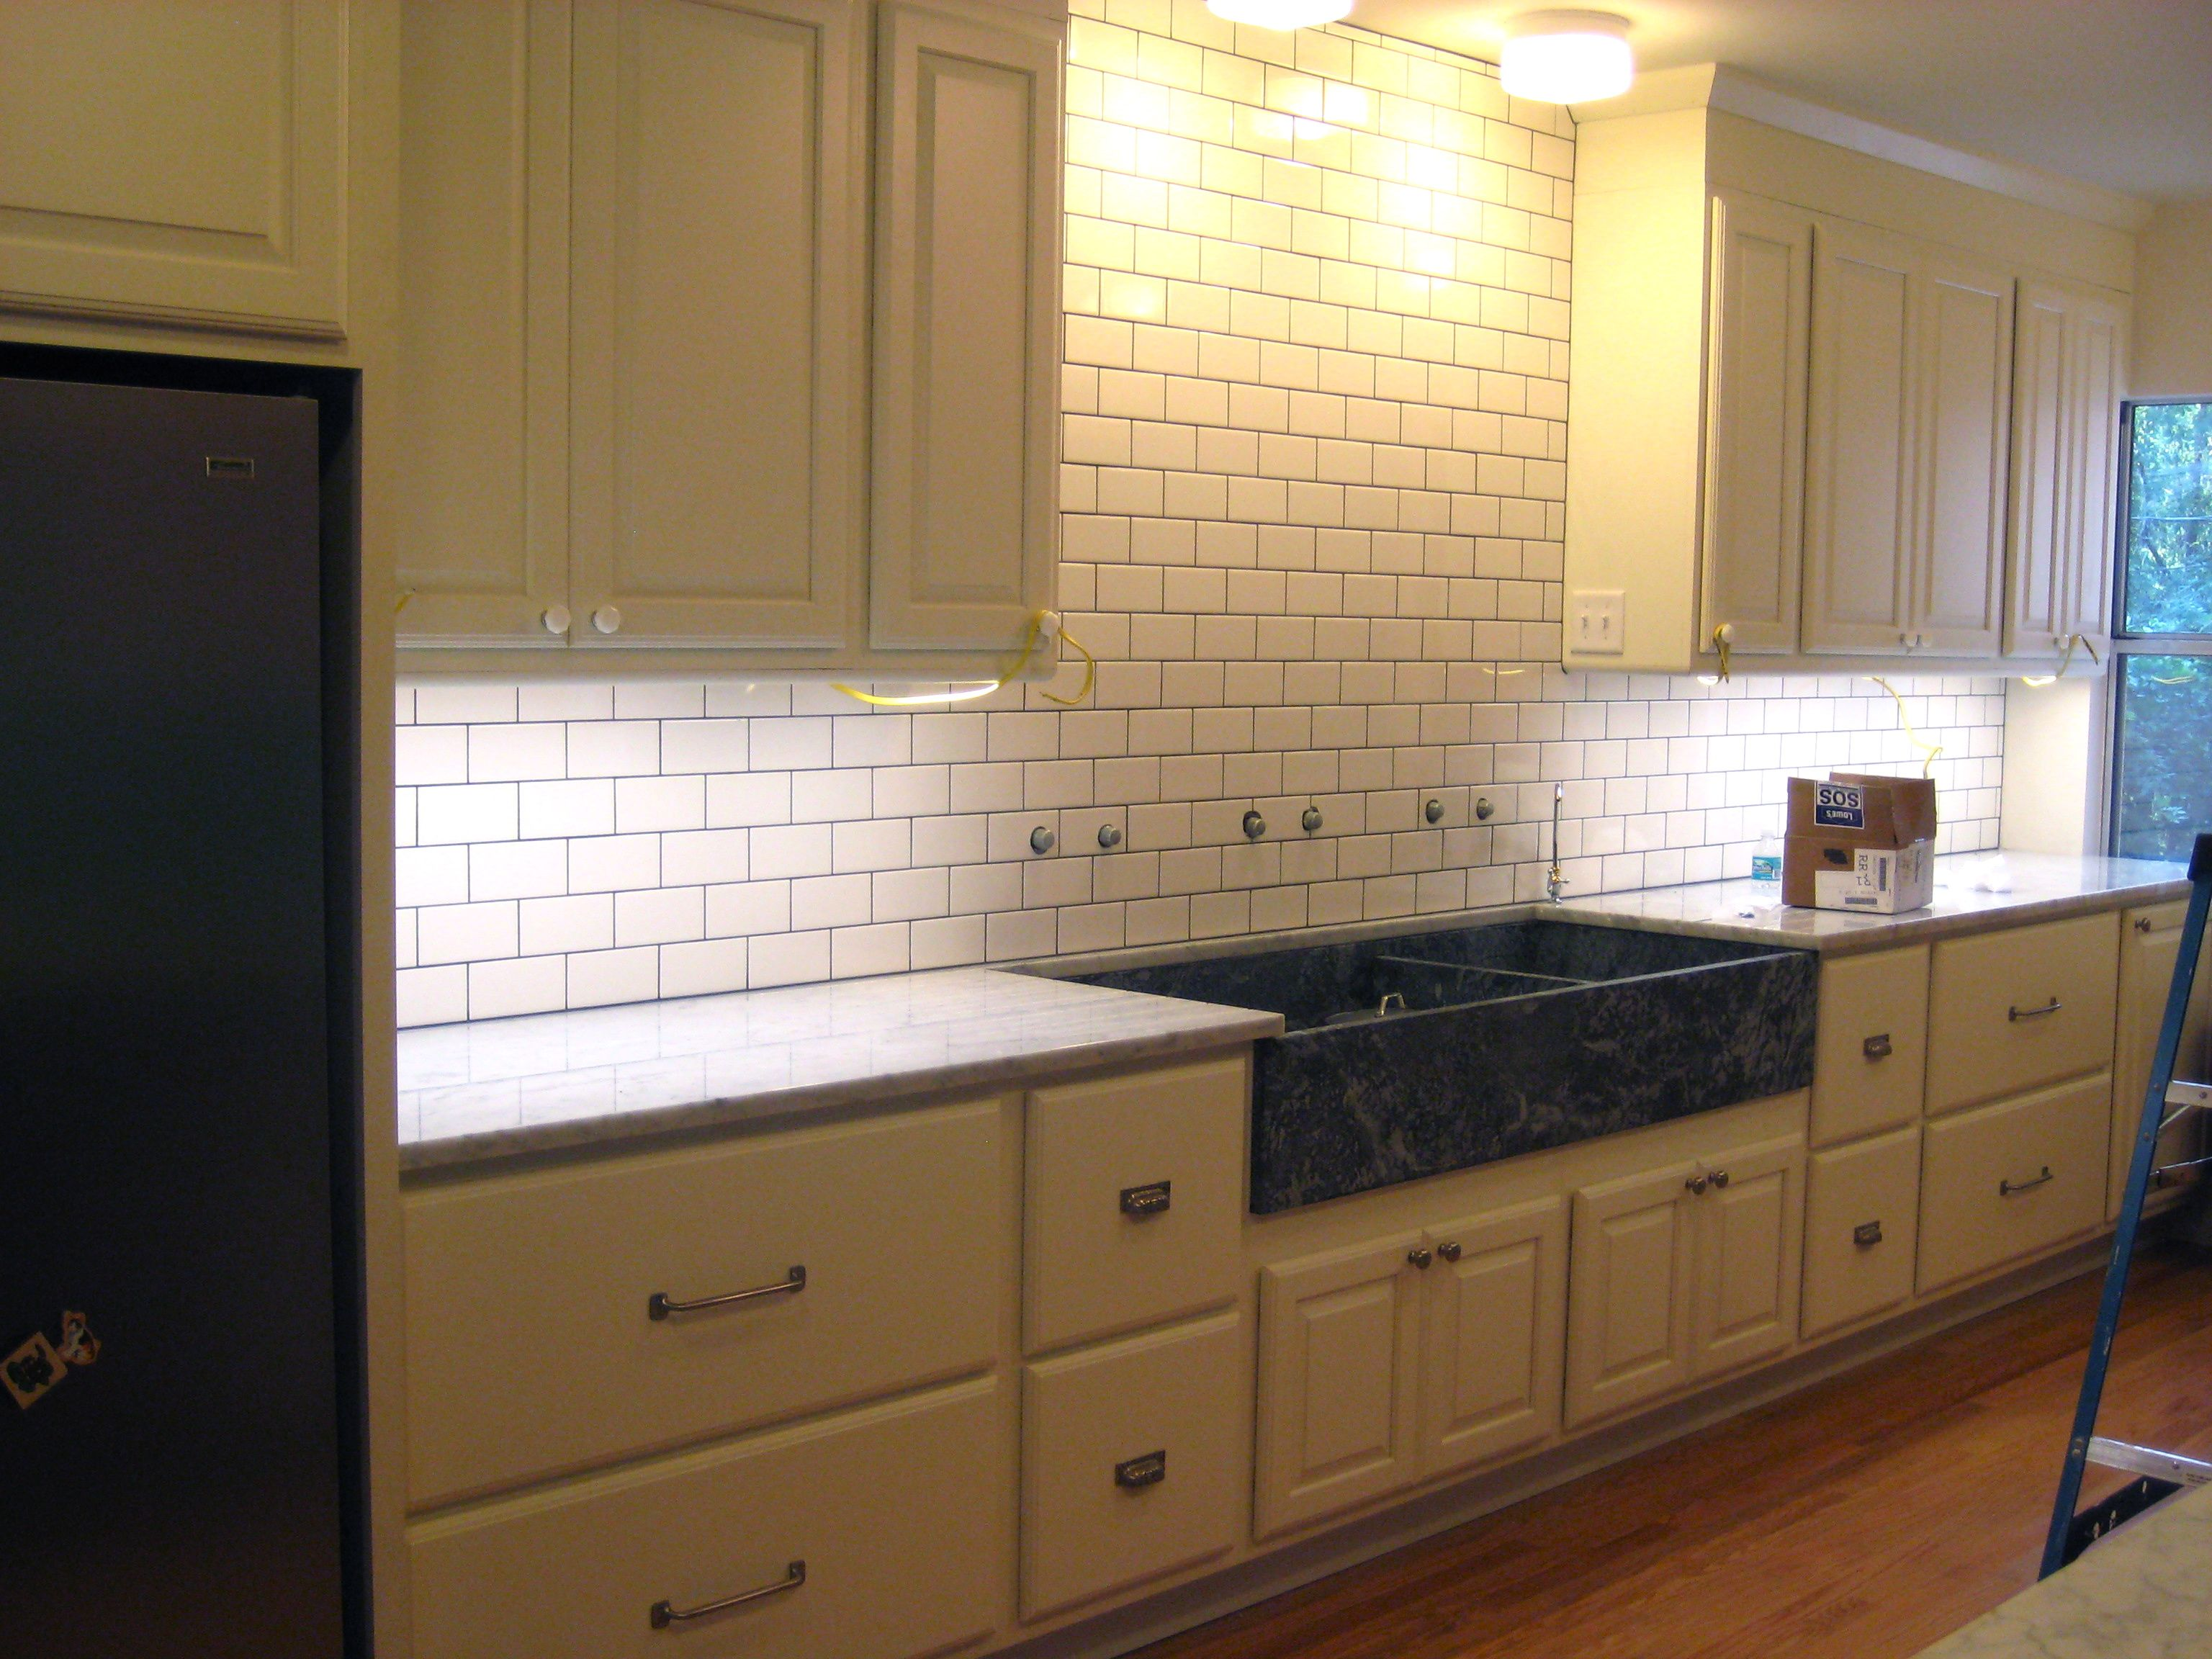 Kitchen Backsplash Ideas With Cream Cabinets subway tile backsplash with expresso cabinets | white subway tile